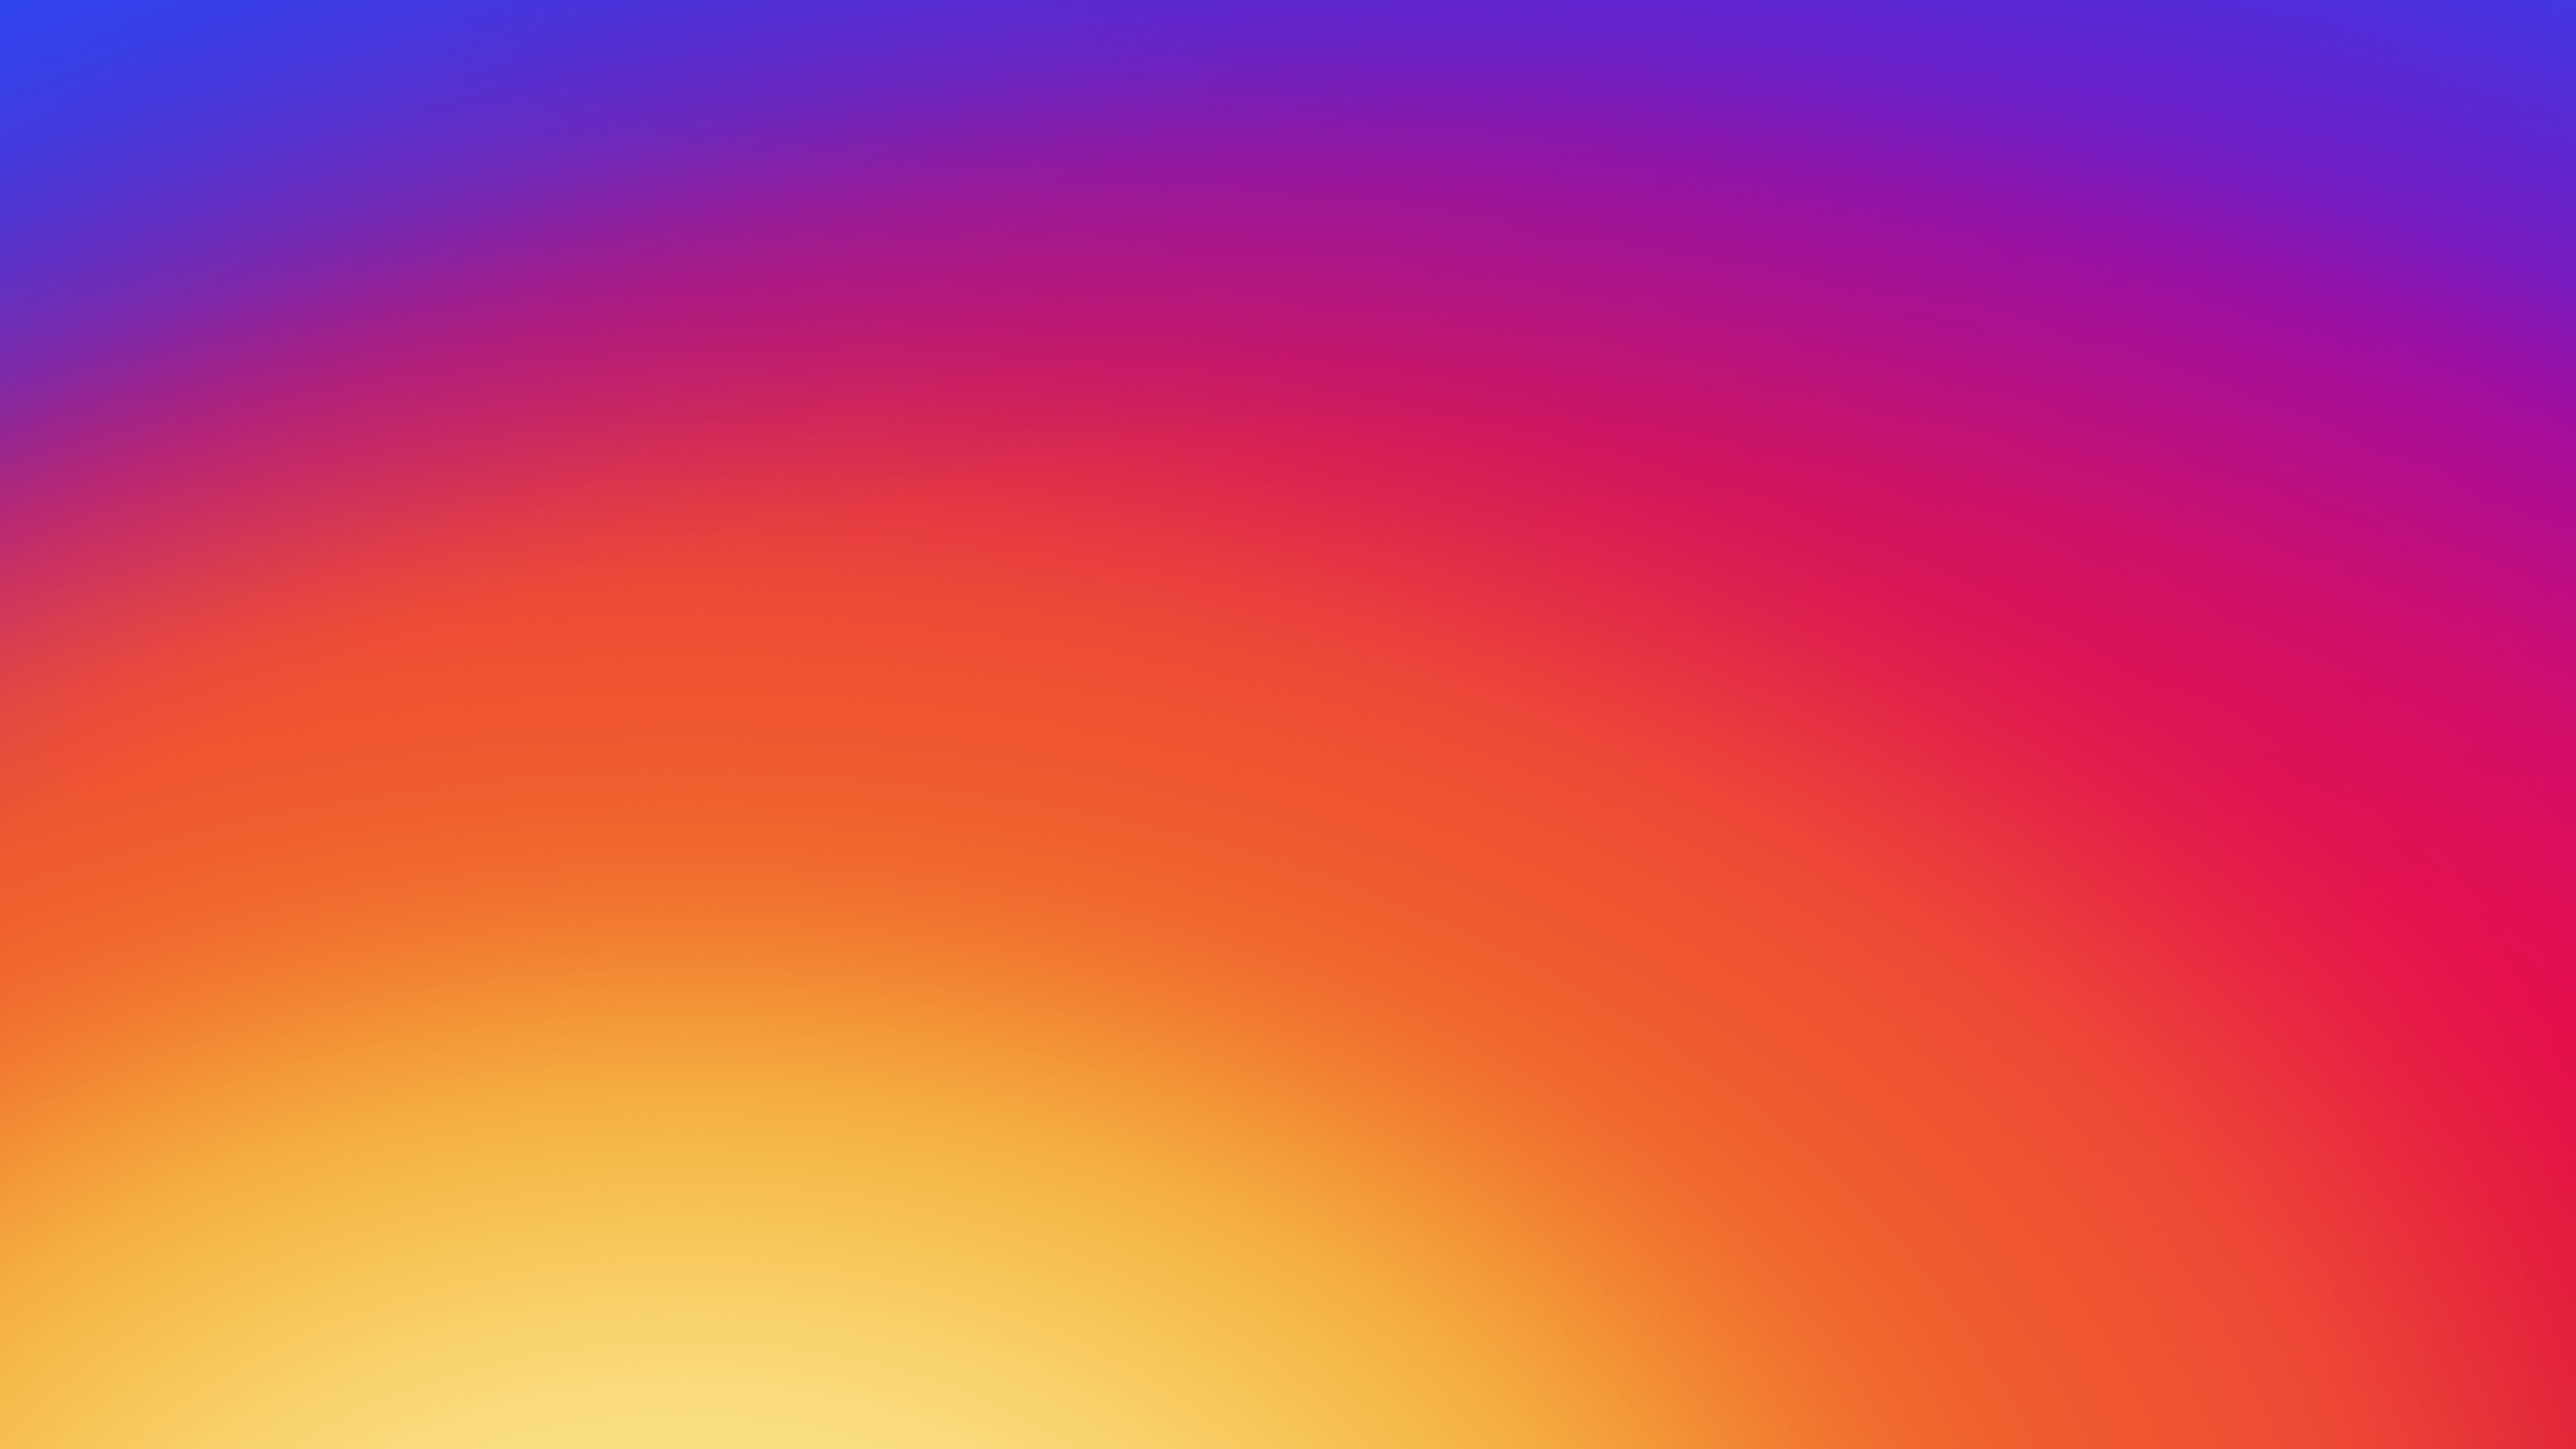 Wallpaper Weekends: Instagram Gradient Wallpaper para Mac, iPhone